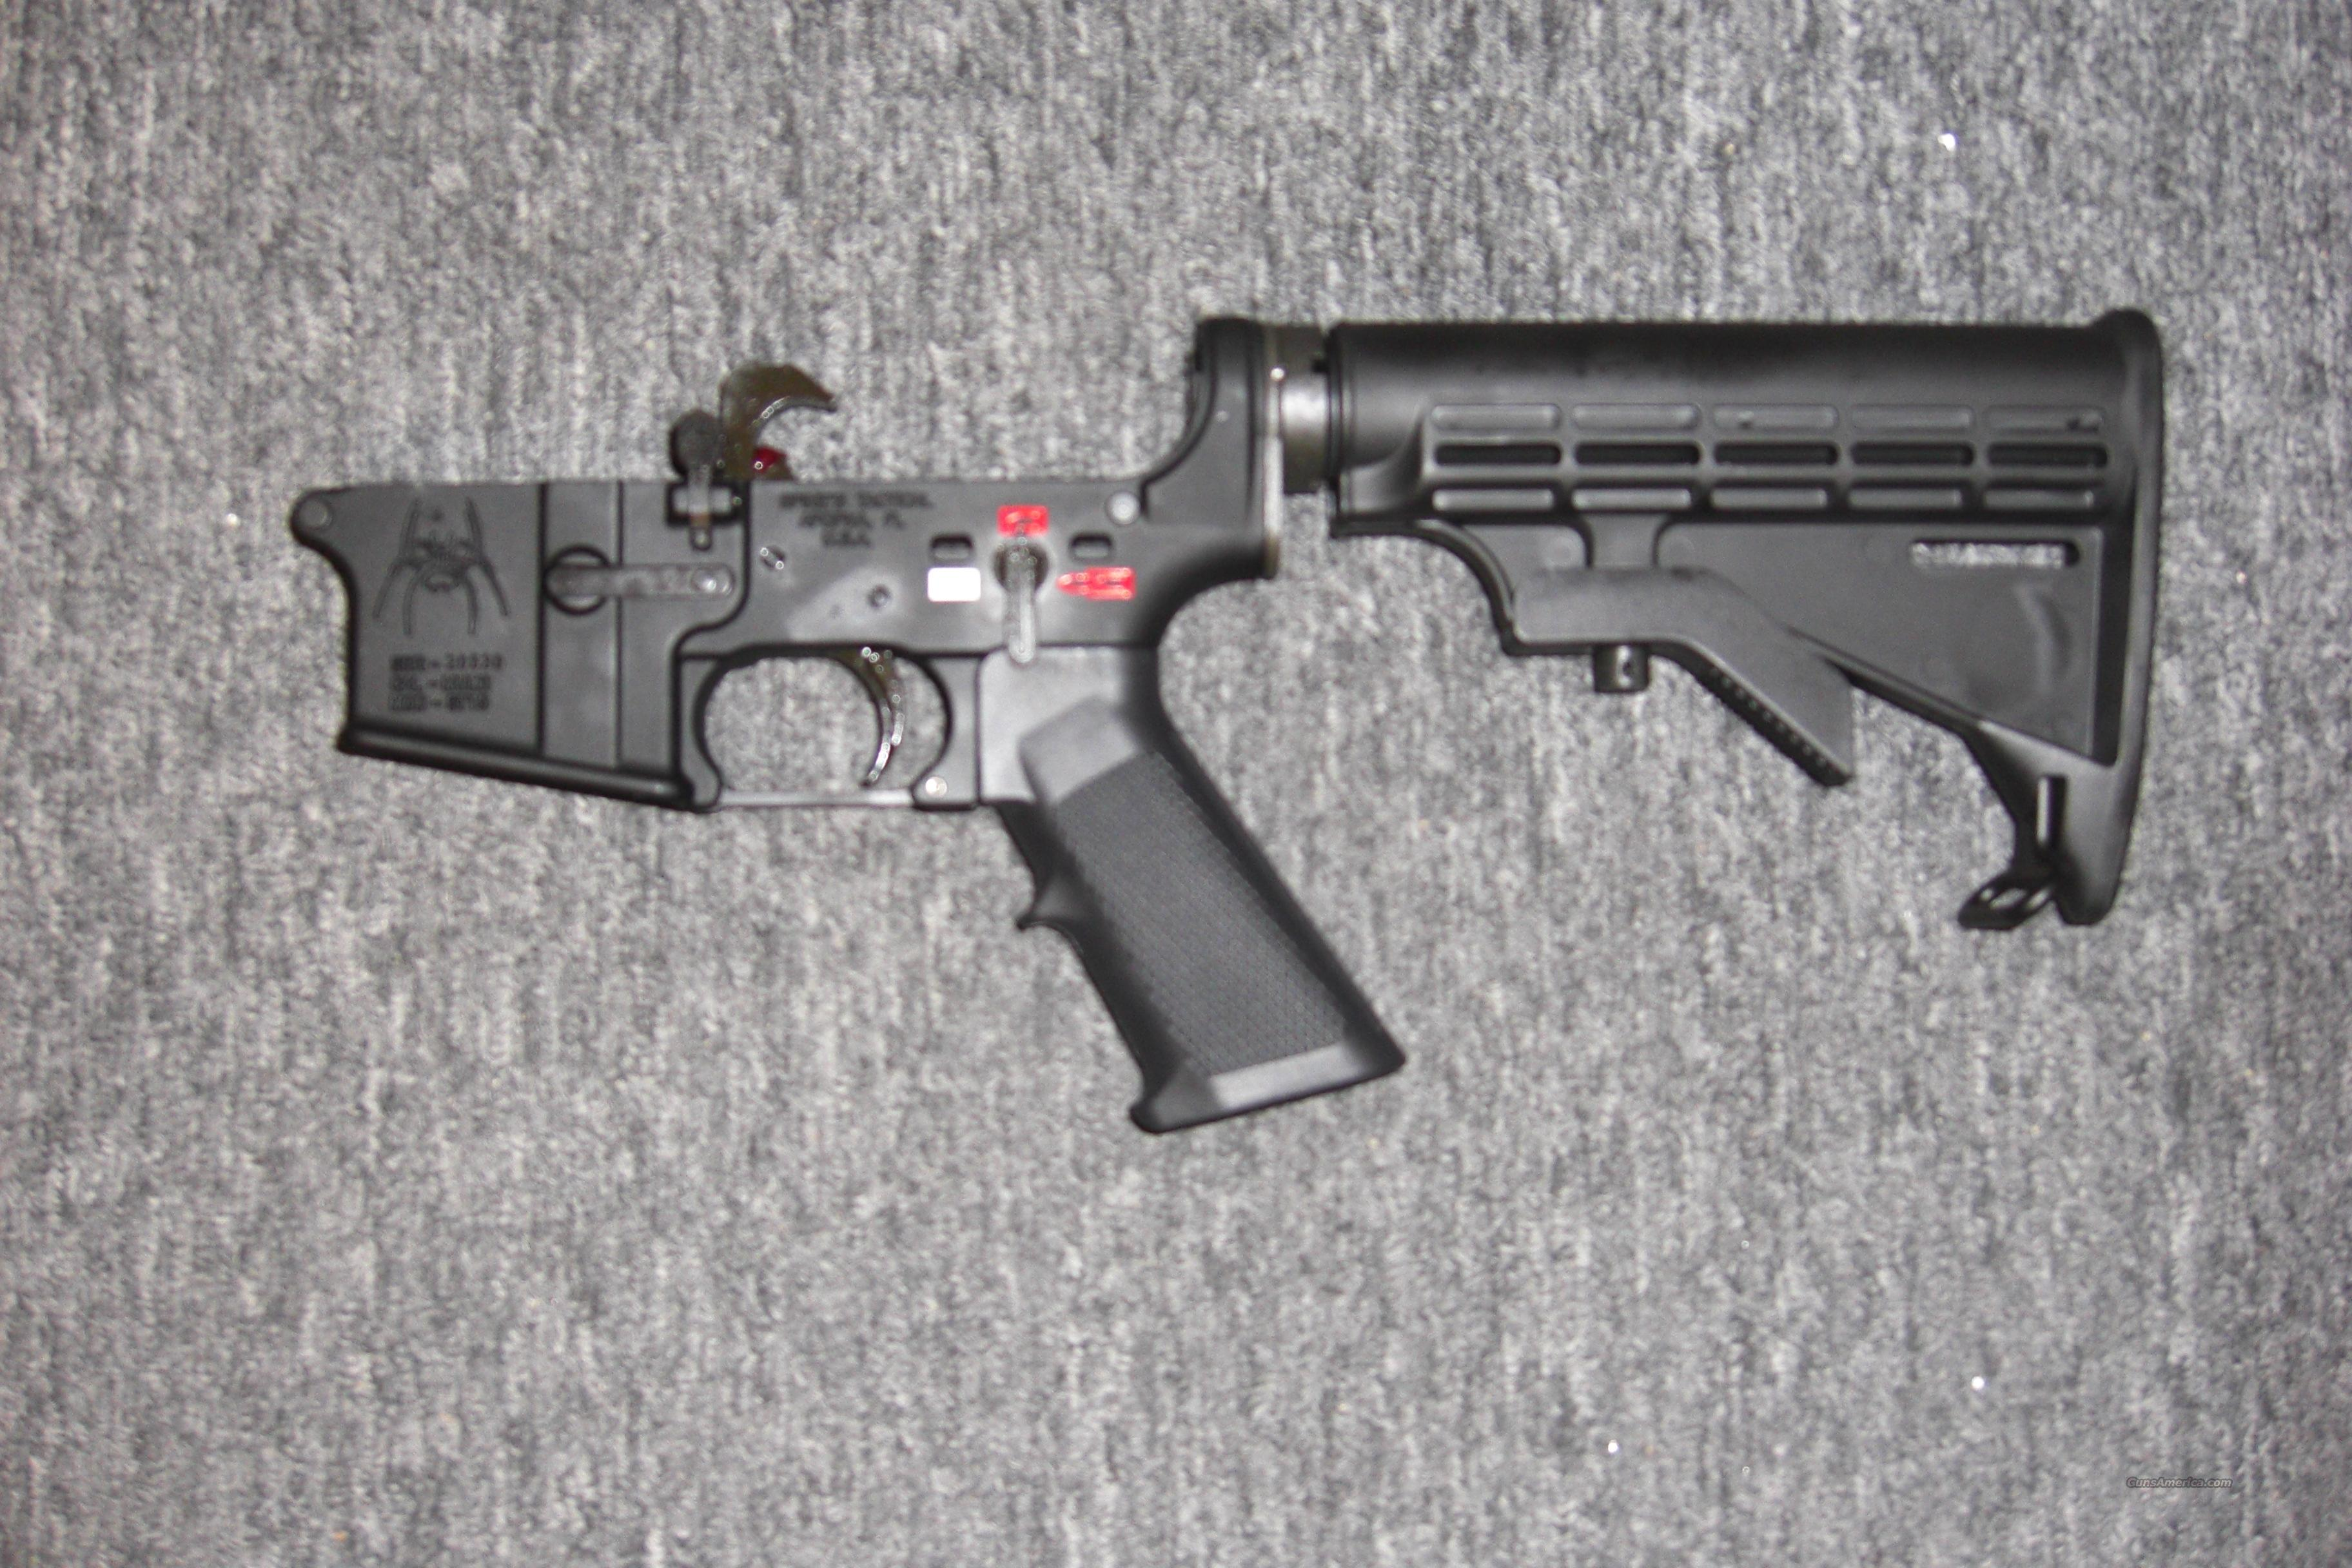 Spike's Tactical receiver w/stock, pistol grip, trigger   Guns > Rifles > AR-15 Rifles - Small Manufacturers > Lower Only